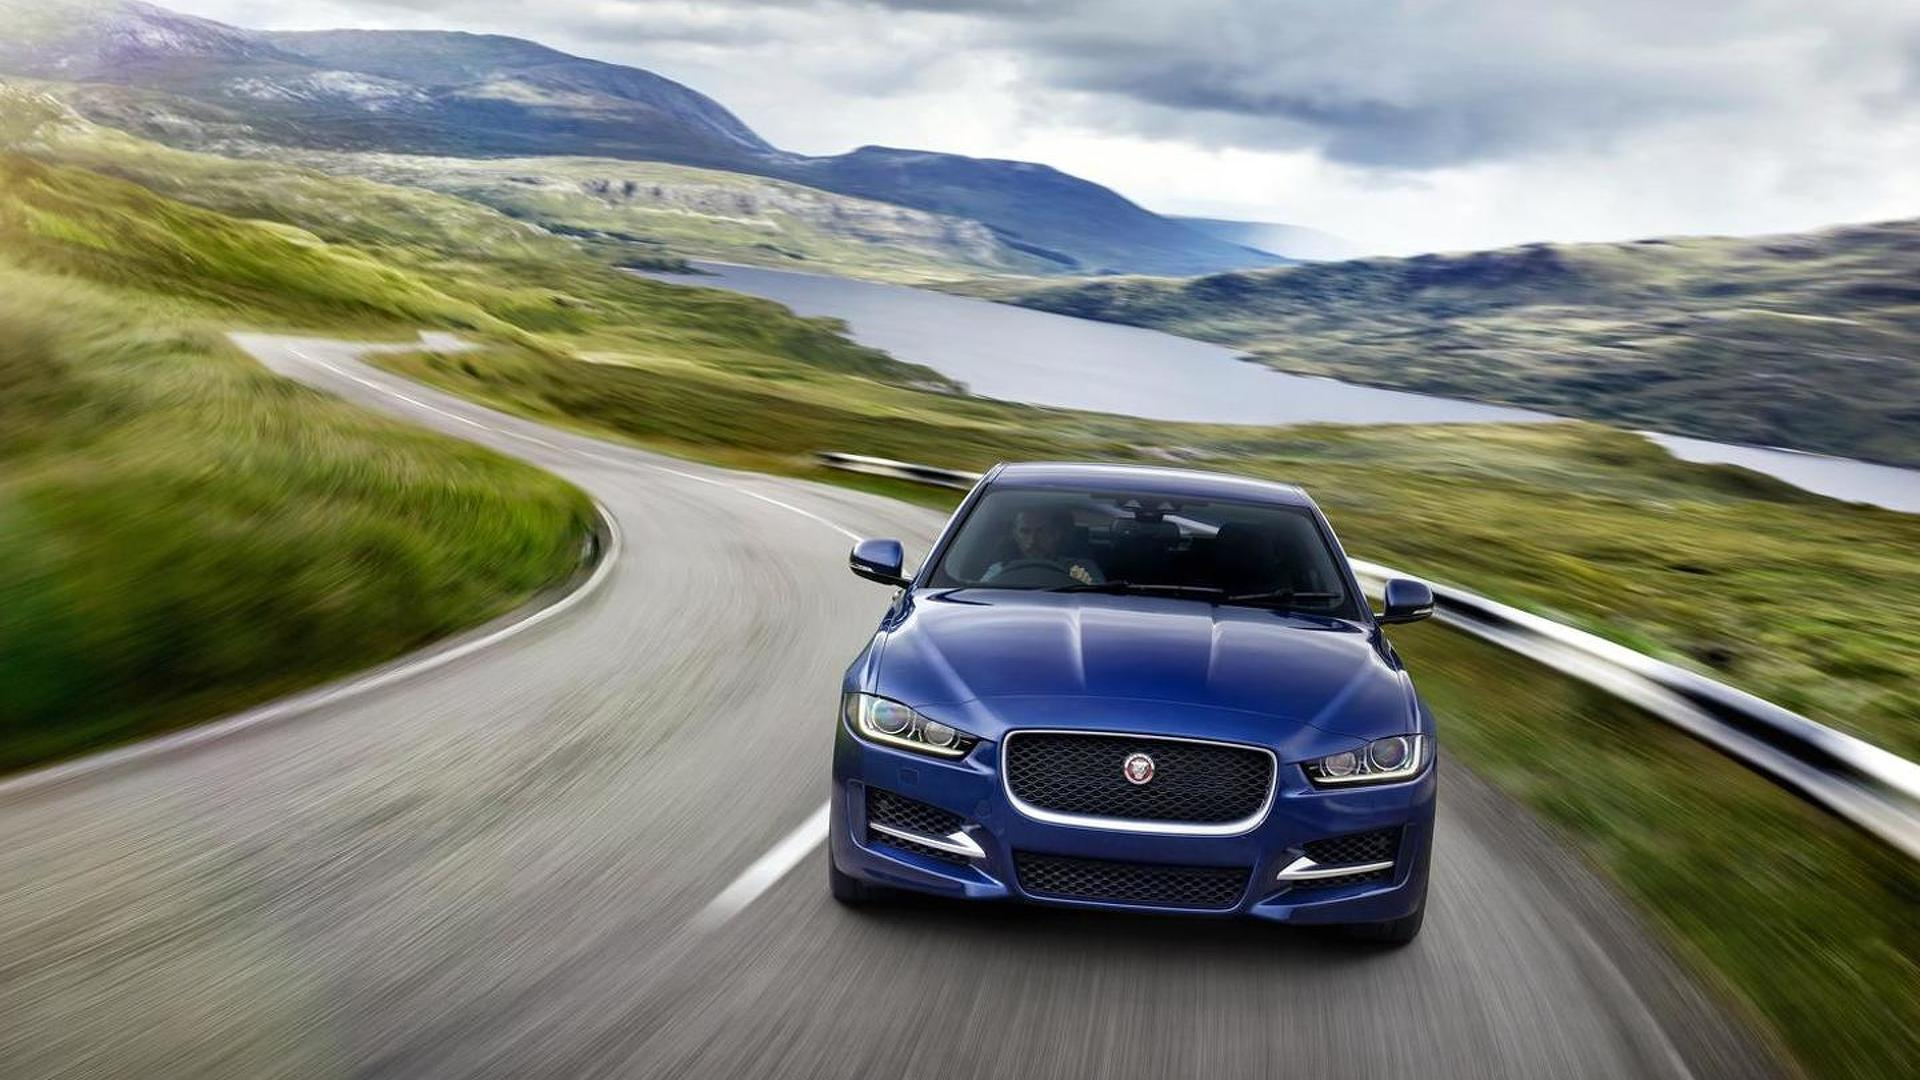 Jaguar won't introduce a model to slot below the XE this decade